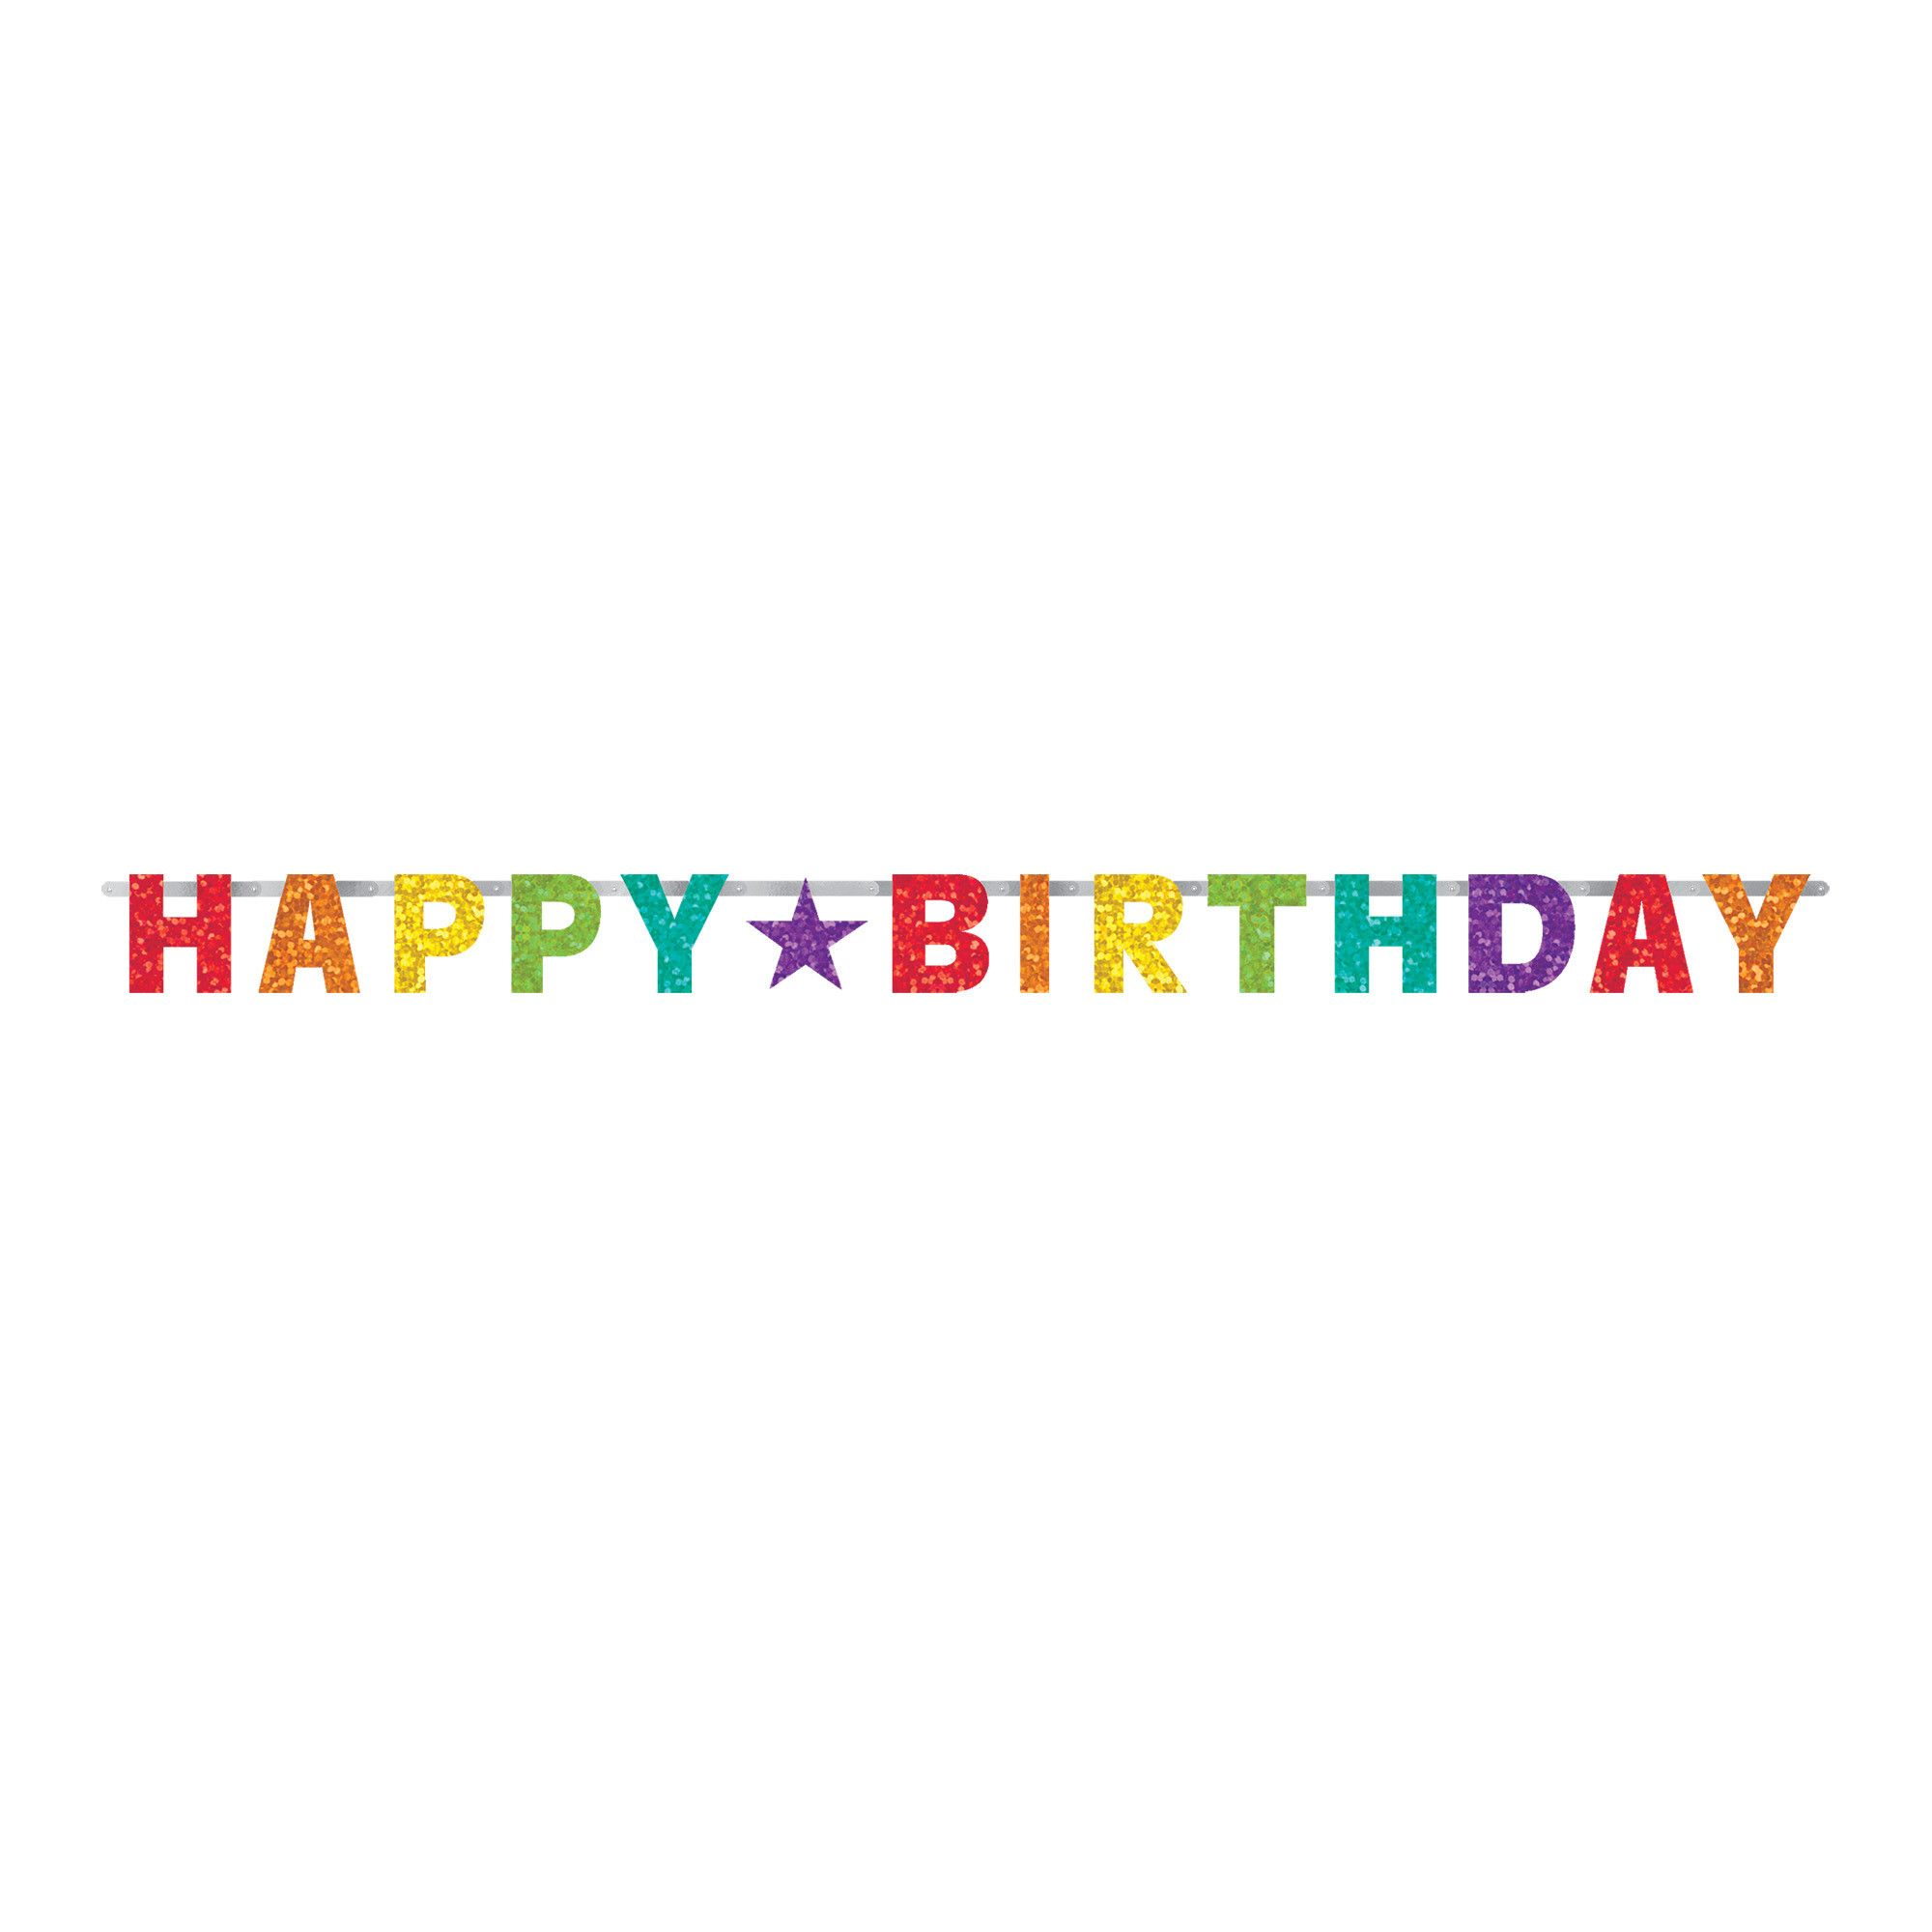 Bday Access Rainbow Prismatic Letter Banner